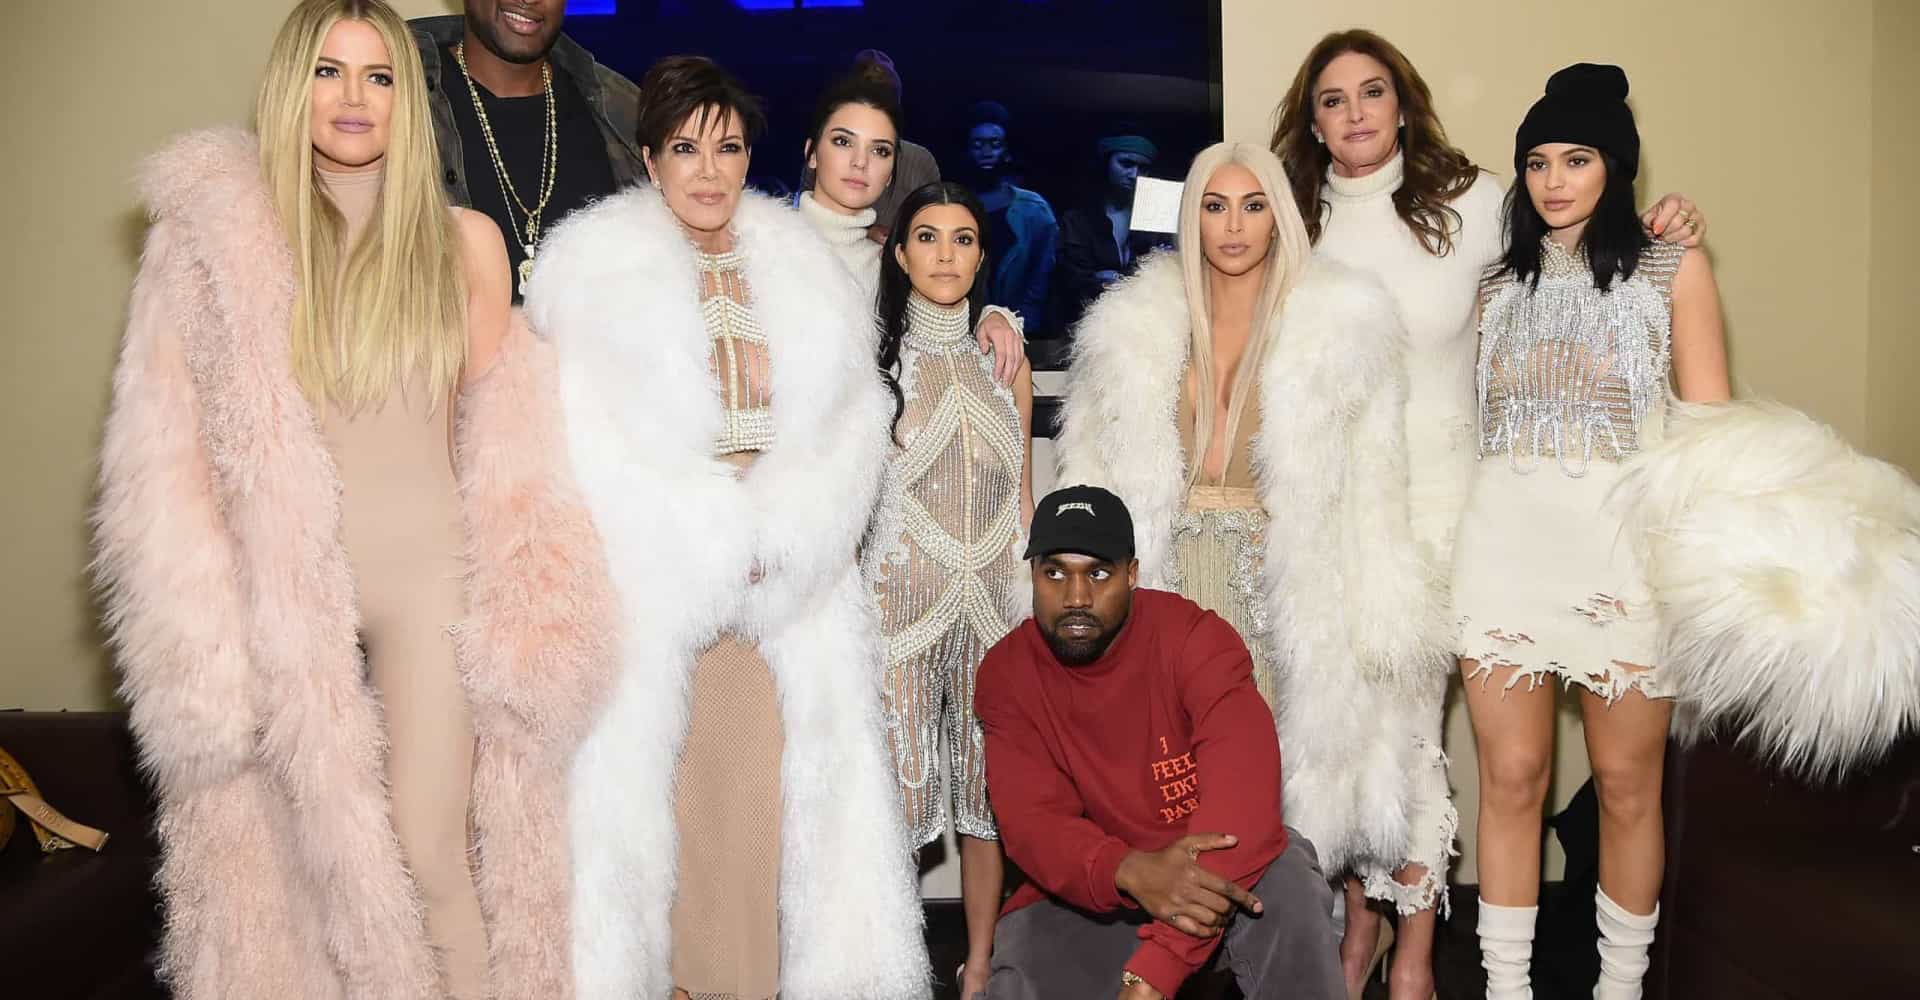 Little-known (and highly entertaining) facts about the Kardashians